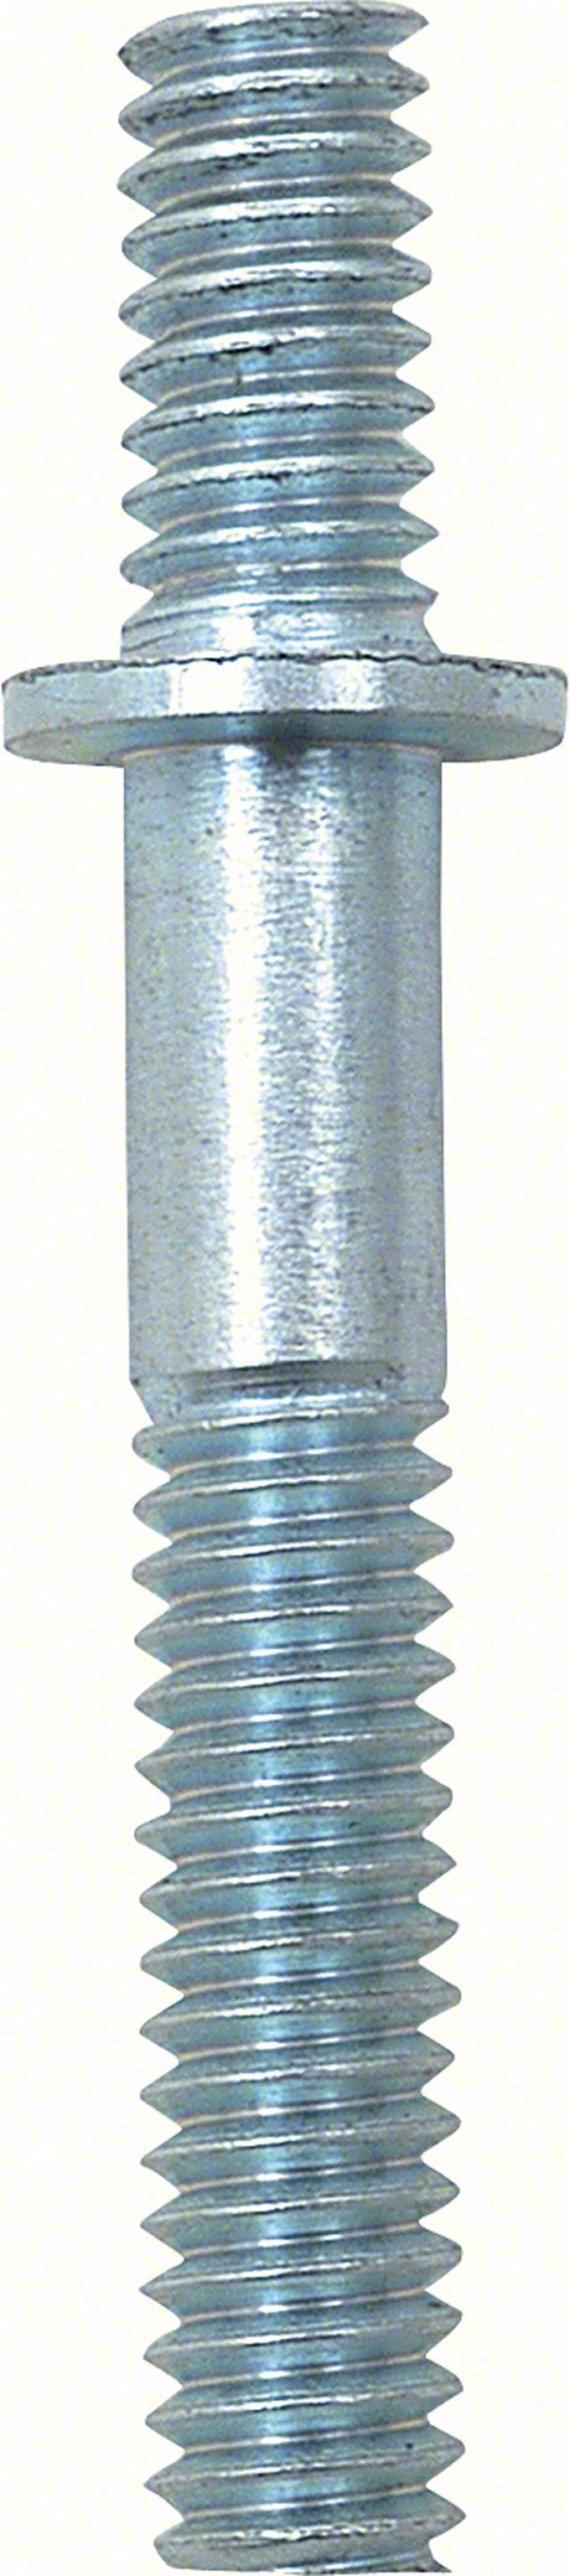 OER Cowl Induction Air Cleaner Stud with Holly Carburetor 3747933